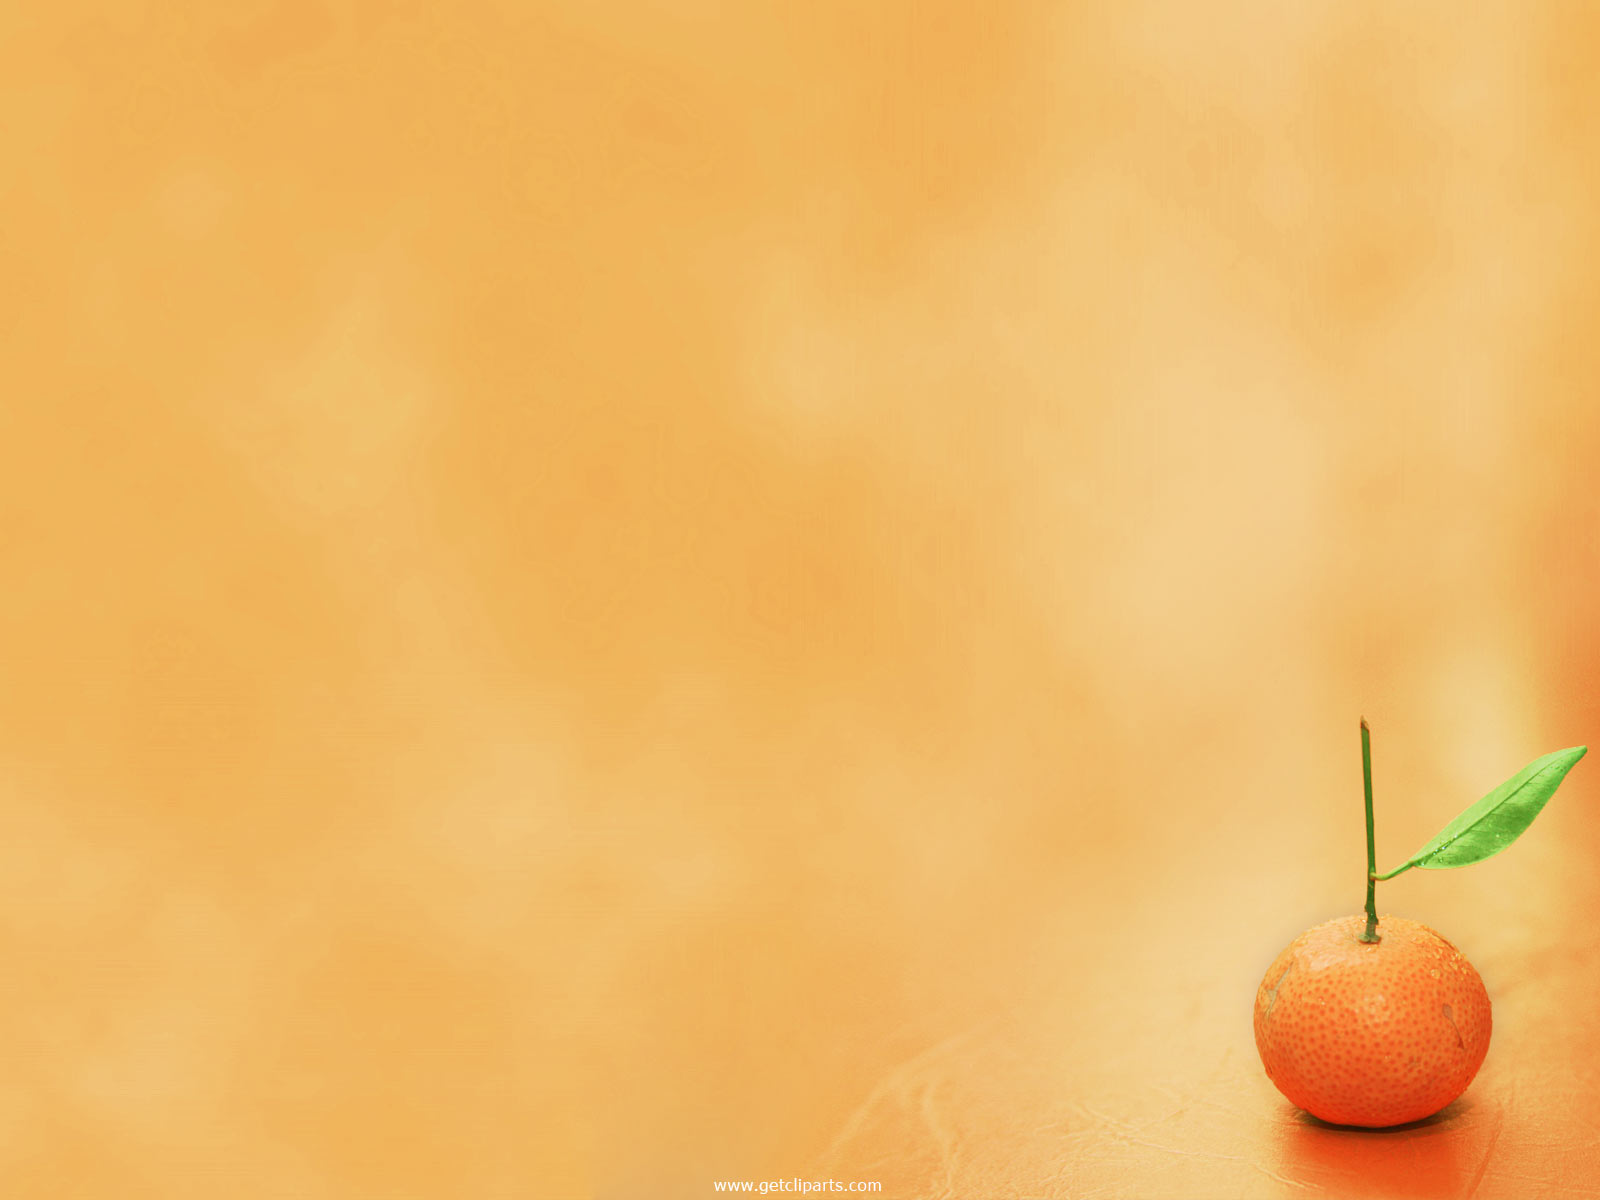 desktop orange wallpapers orange wallpaper orange background hd 17jpg 1600x1200